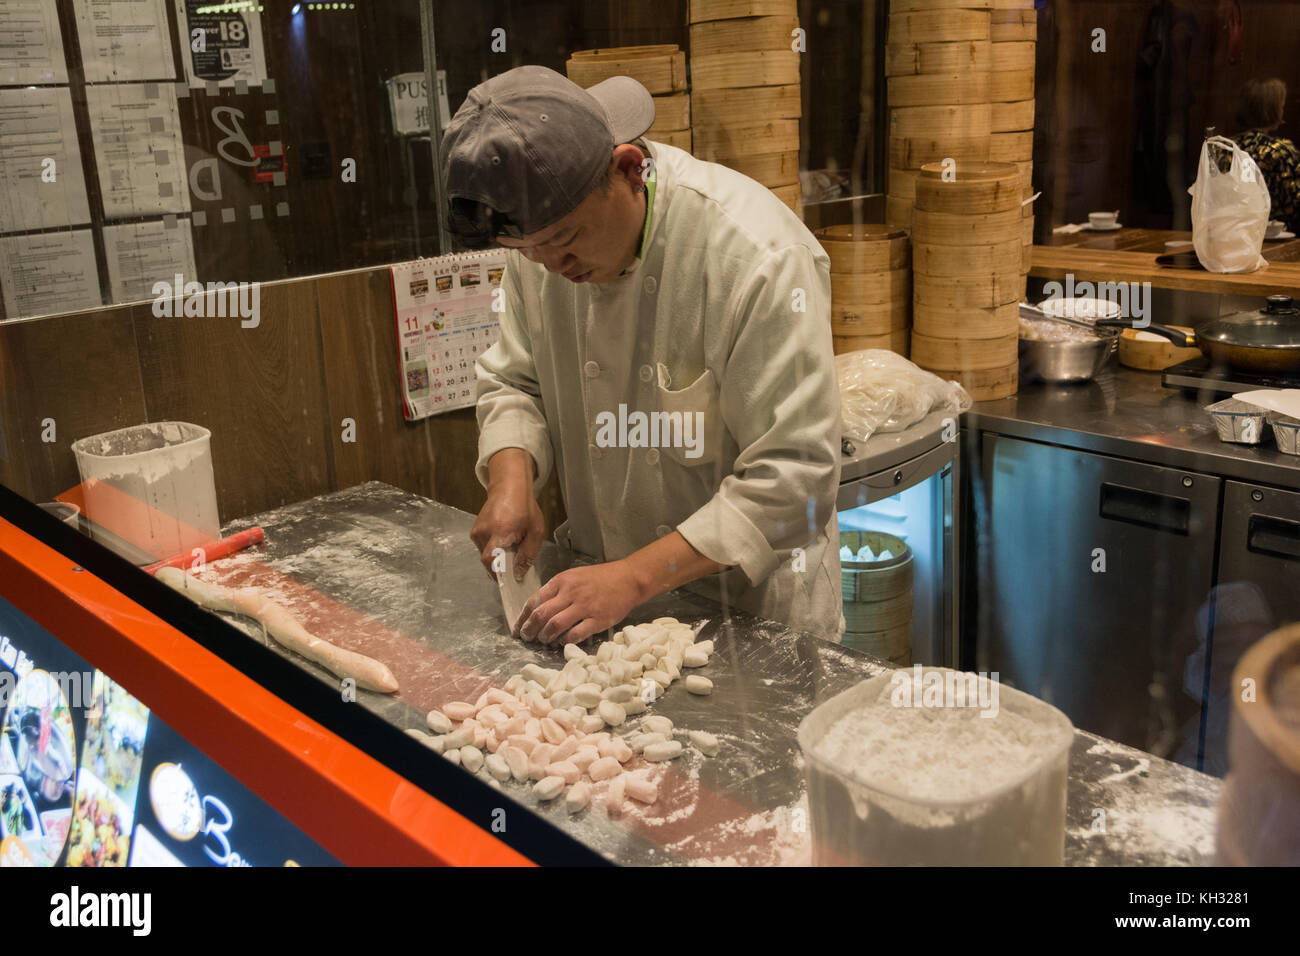 A young Chinese chef rolls Chinese Dim Sum in China Town, London, England, UK. - Stock Image